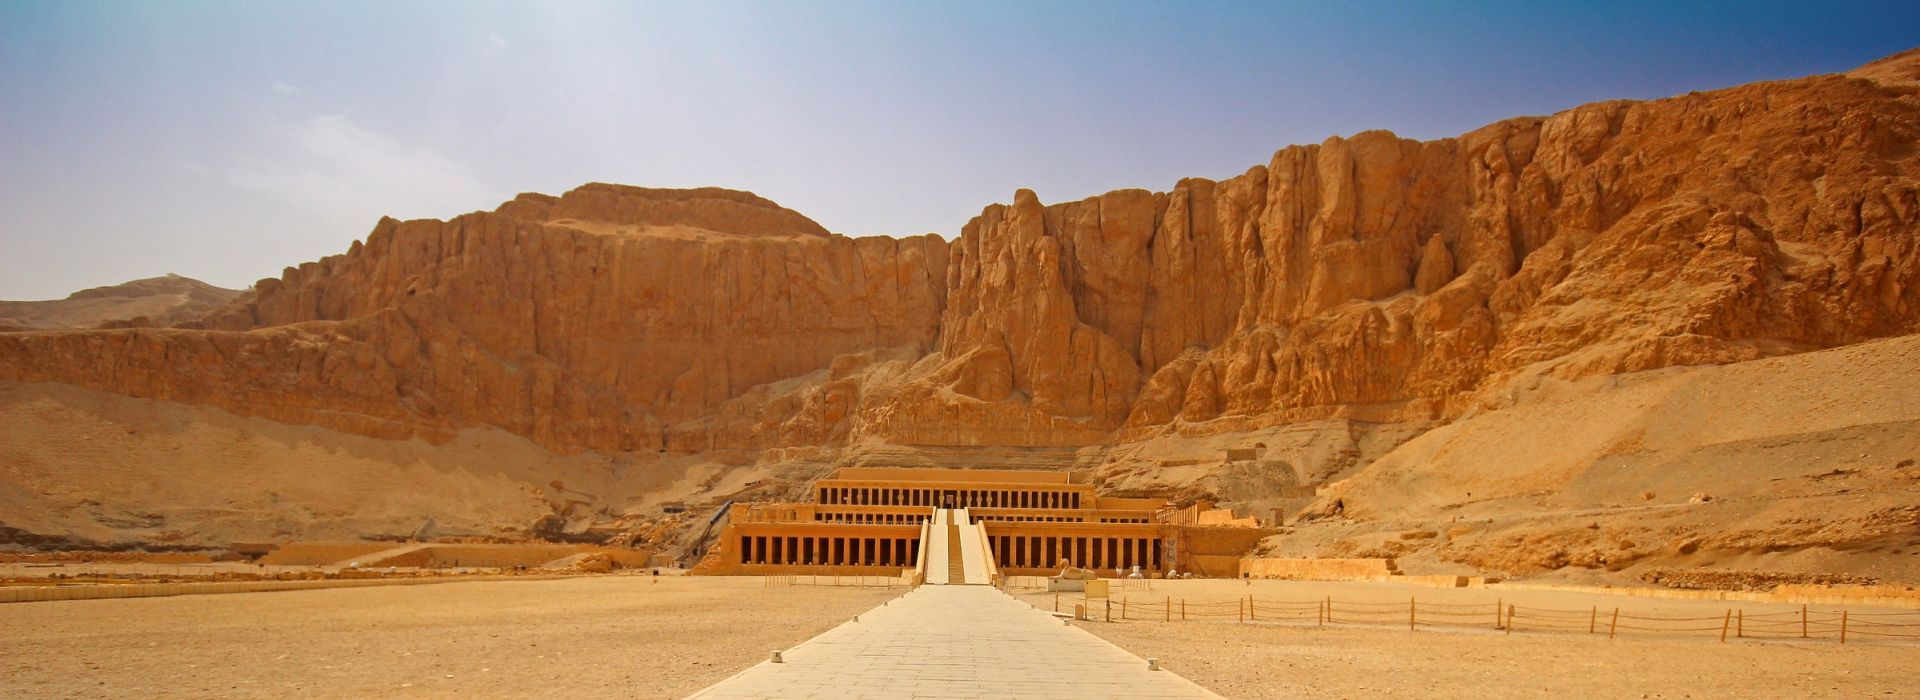 Sightseeing Tours in Egypt